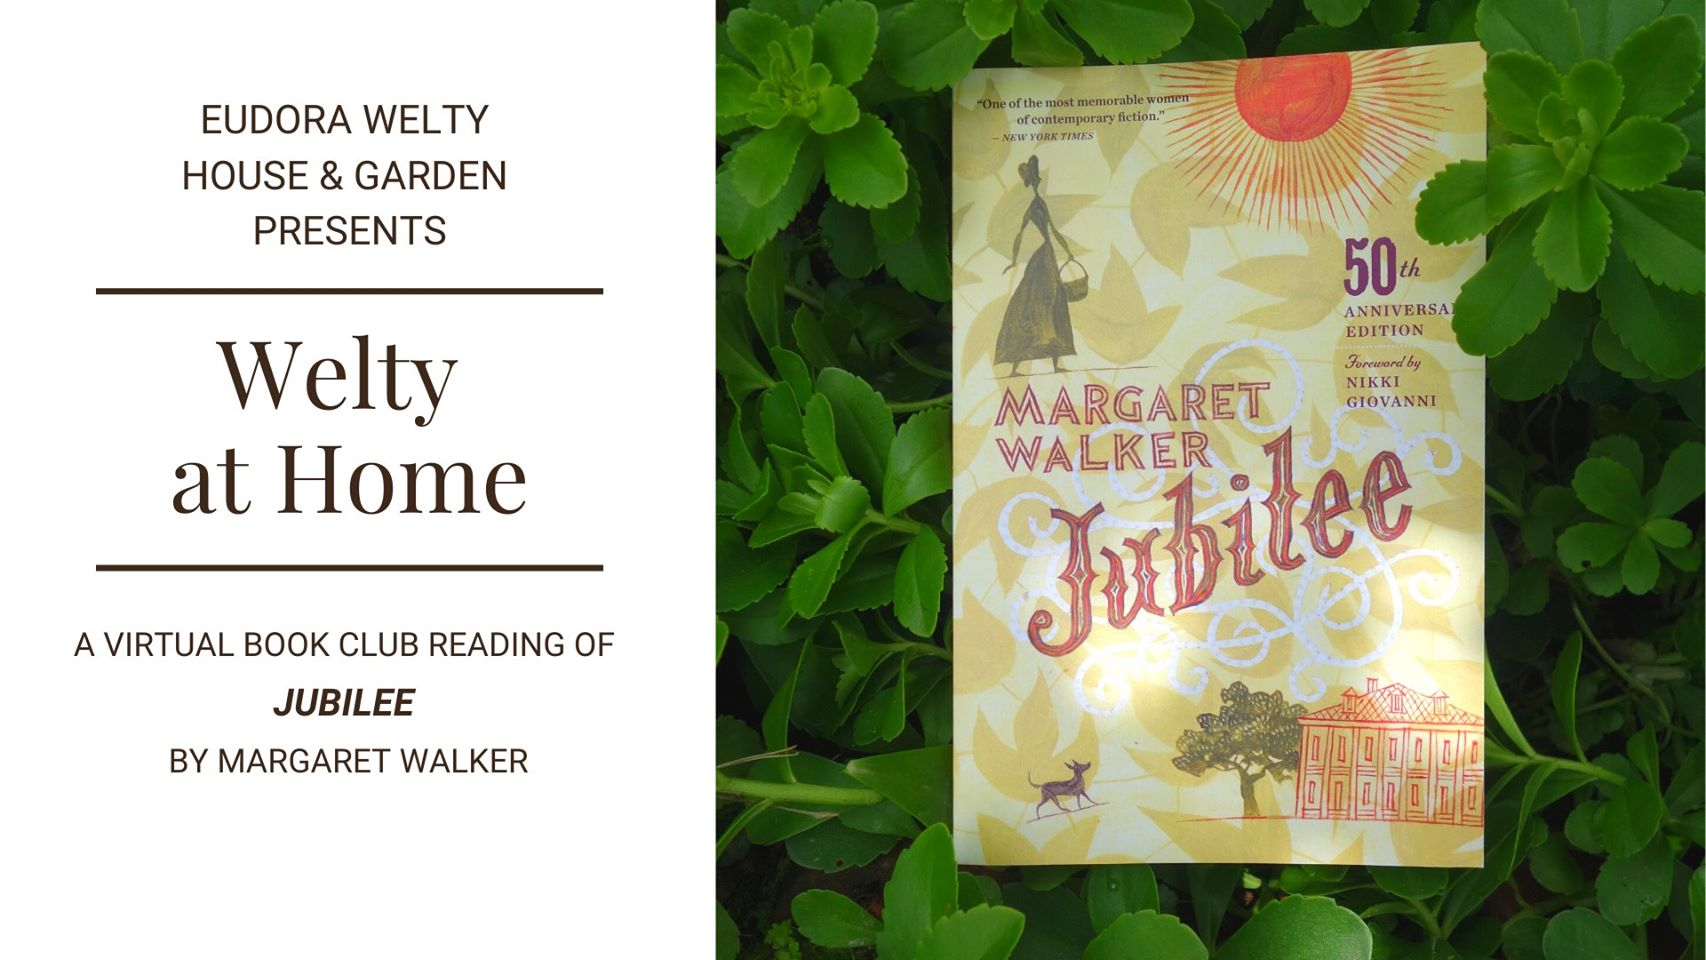 Cover of Jubilee book by Margaret Walker surrounded by greenery beside text graphic with book club details